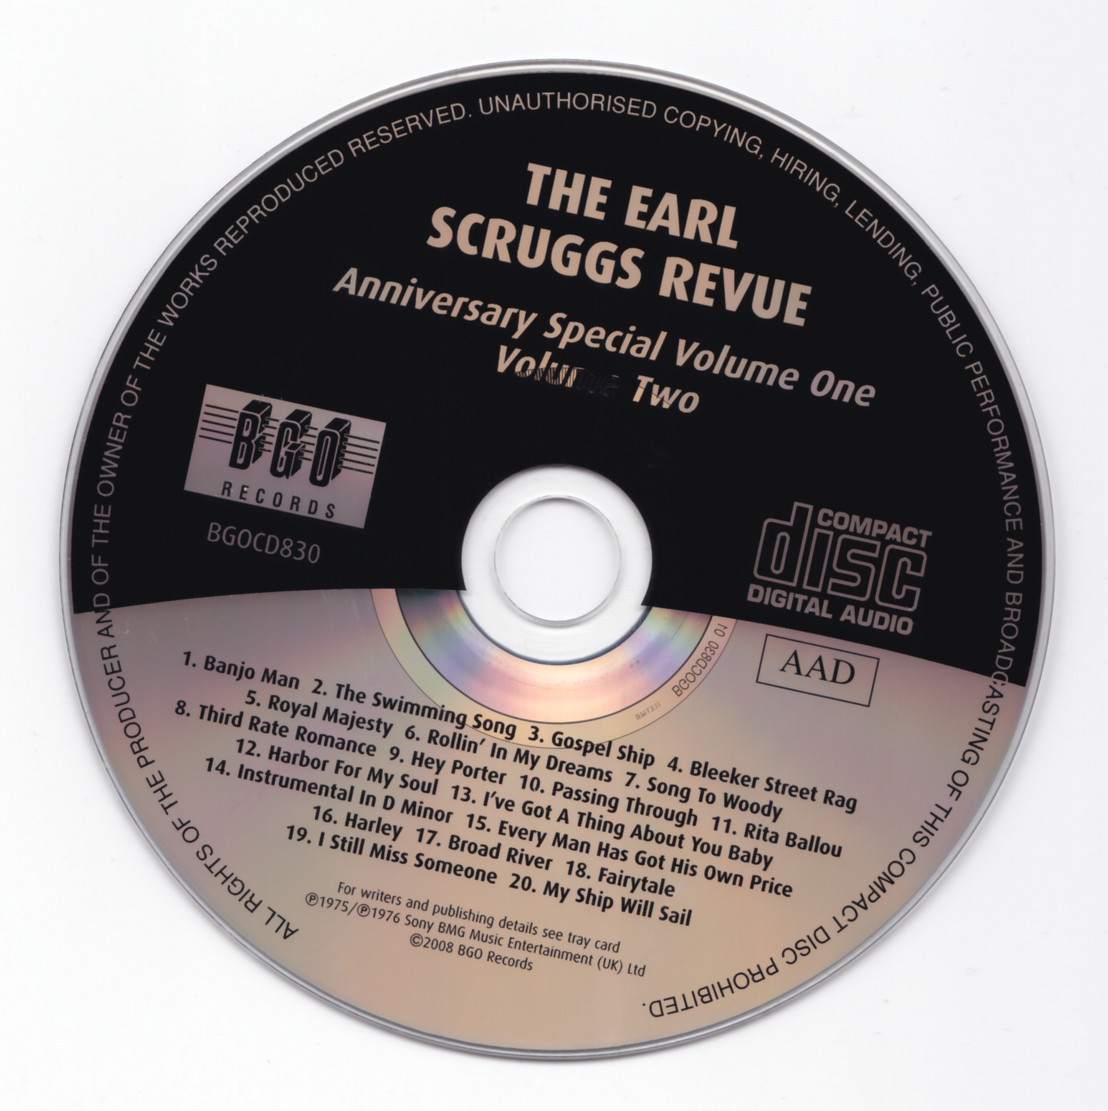 The Earl Scruggs Revue - Anniversary Special Volume One / Volume Two (1975-1976) {BGO Records BGOCD830 rel 2008}